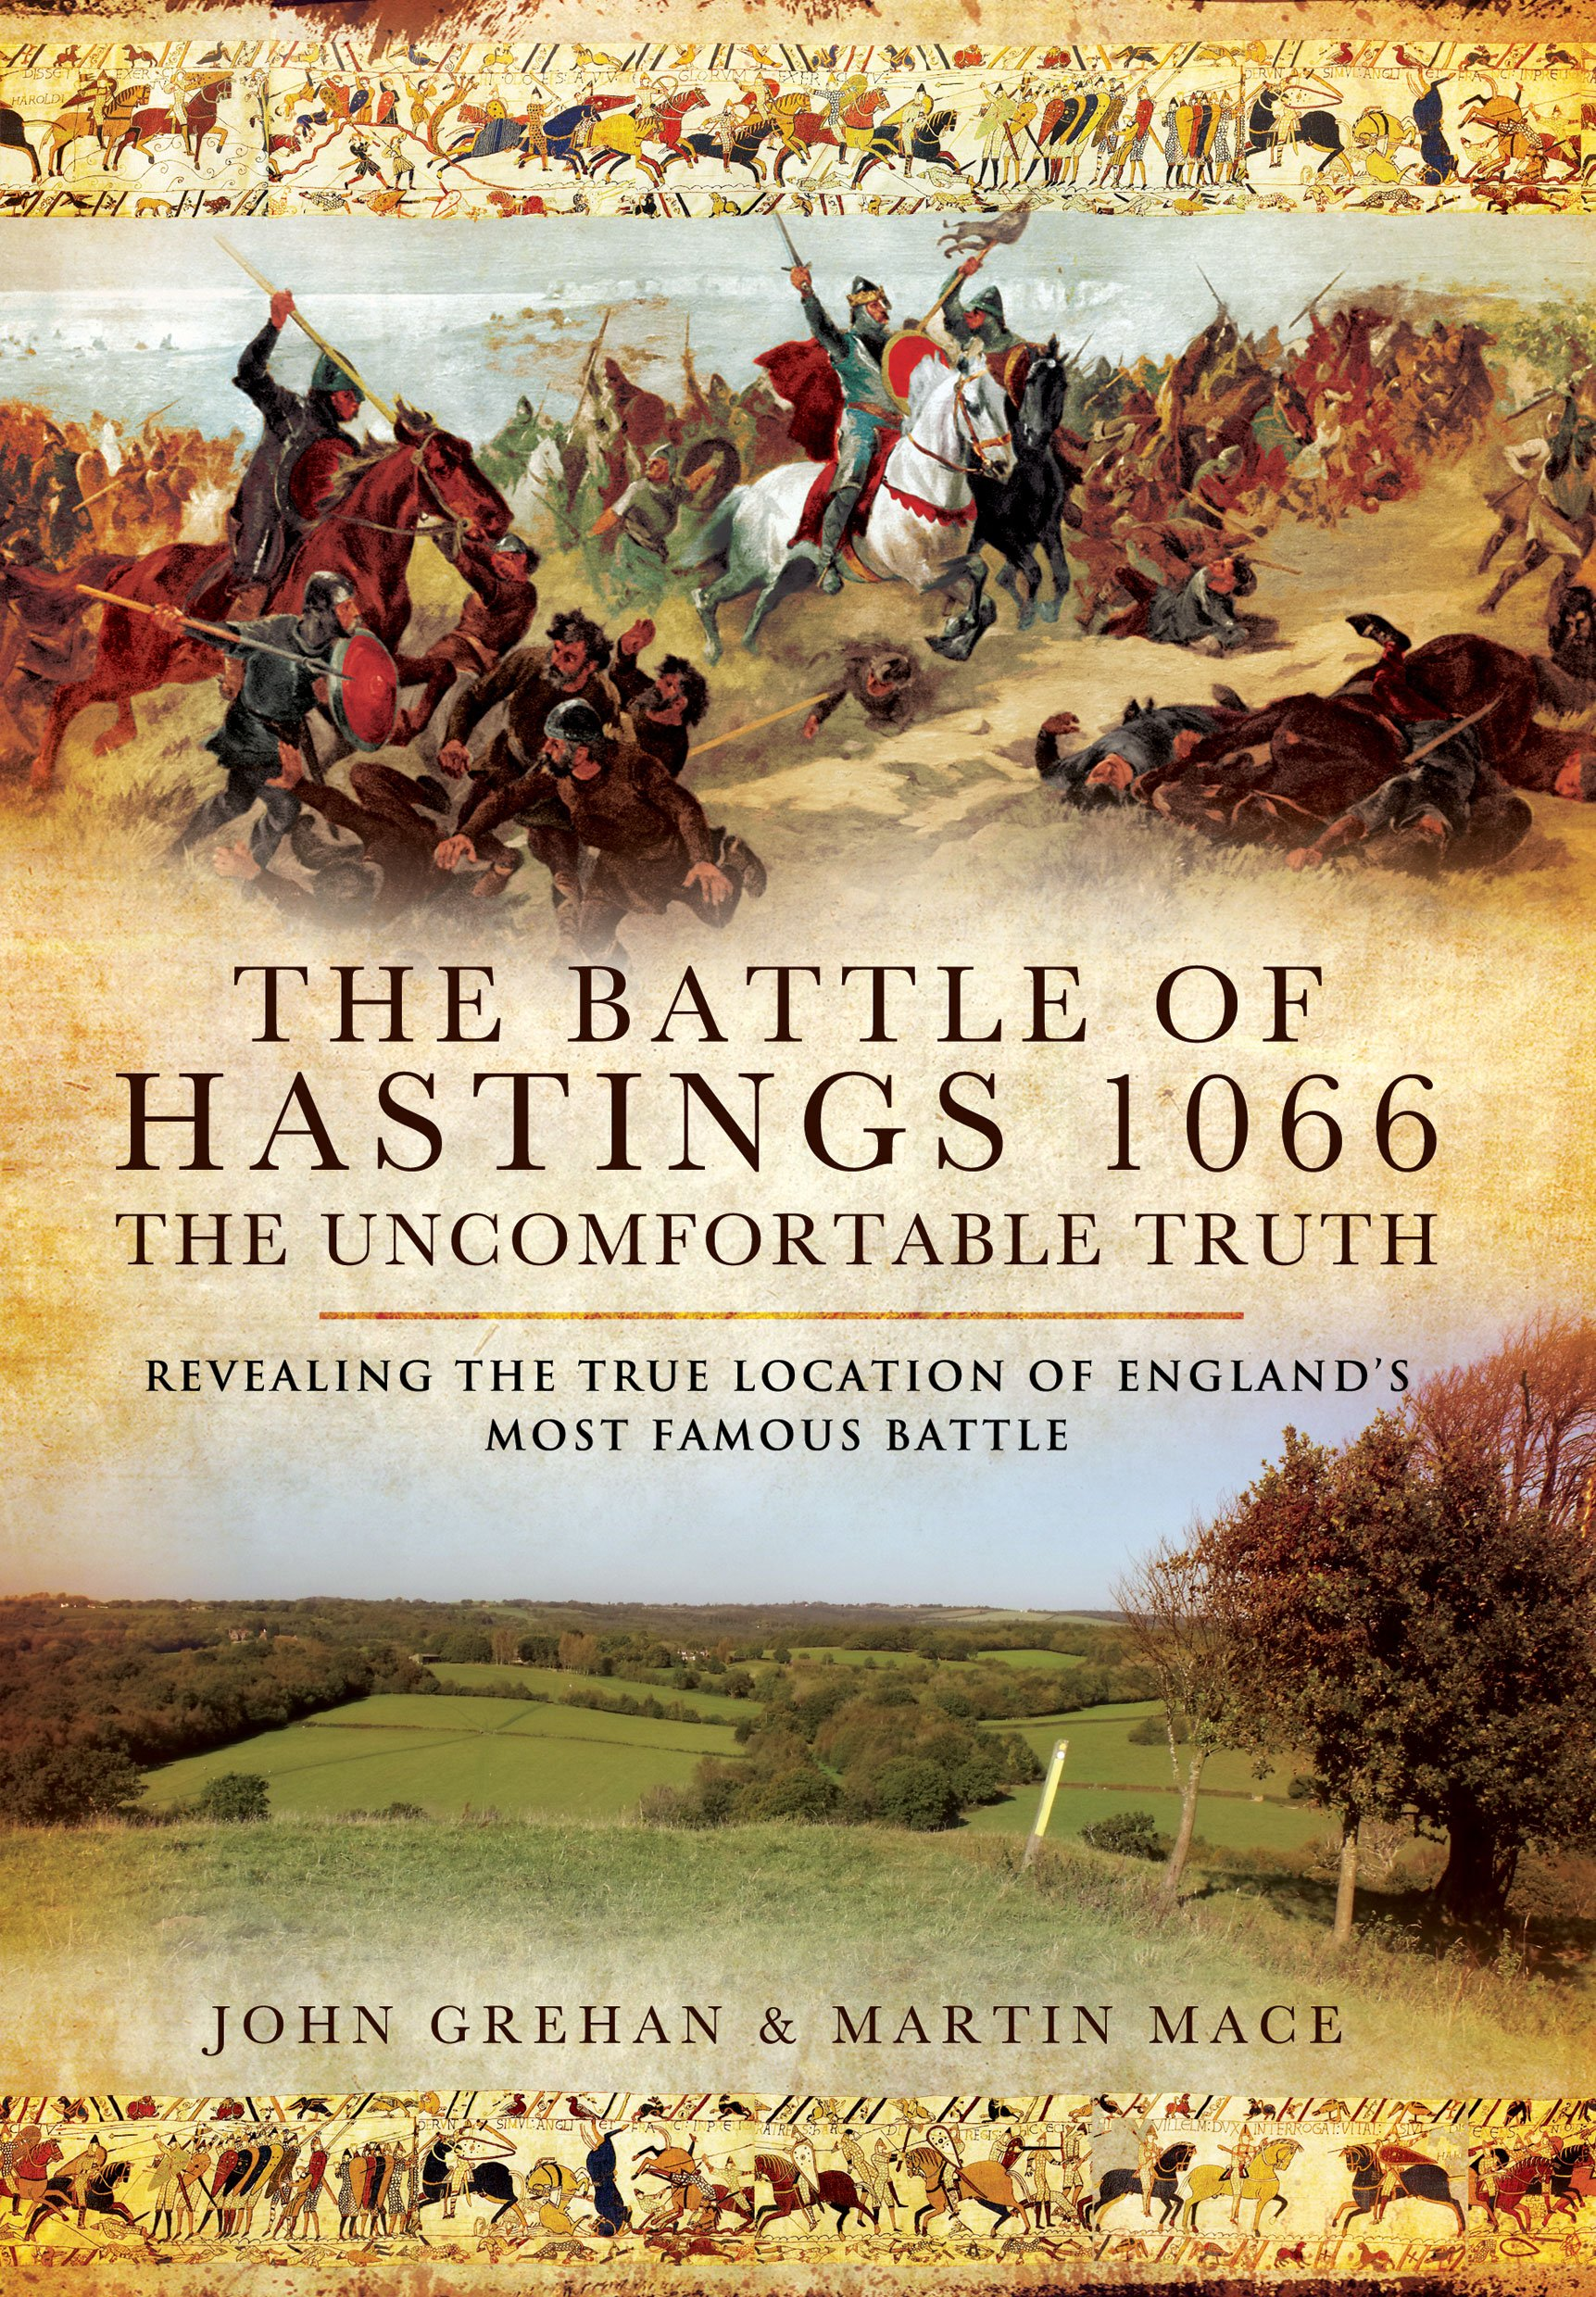 Read Online The Battle of Hastings 1066 - The Uncomfortable Truth: Revealing the True Location of England's Most Famous Battle pdf